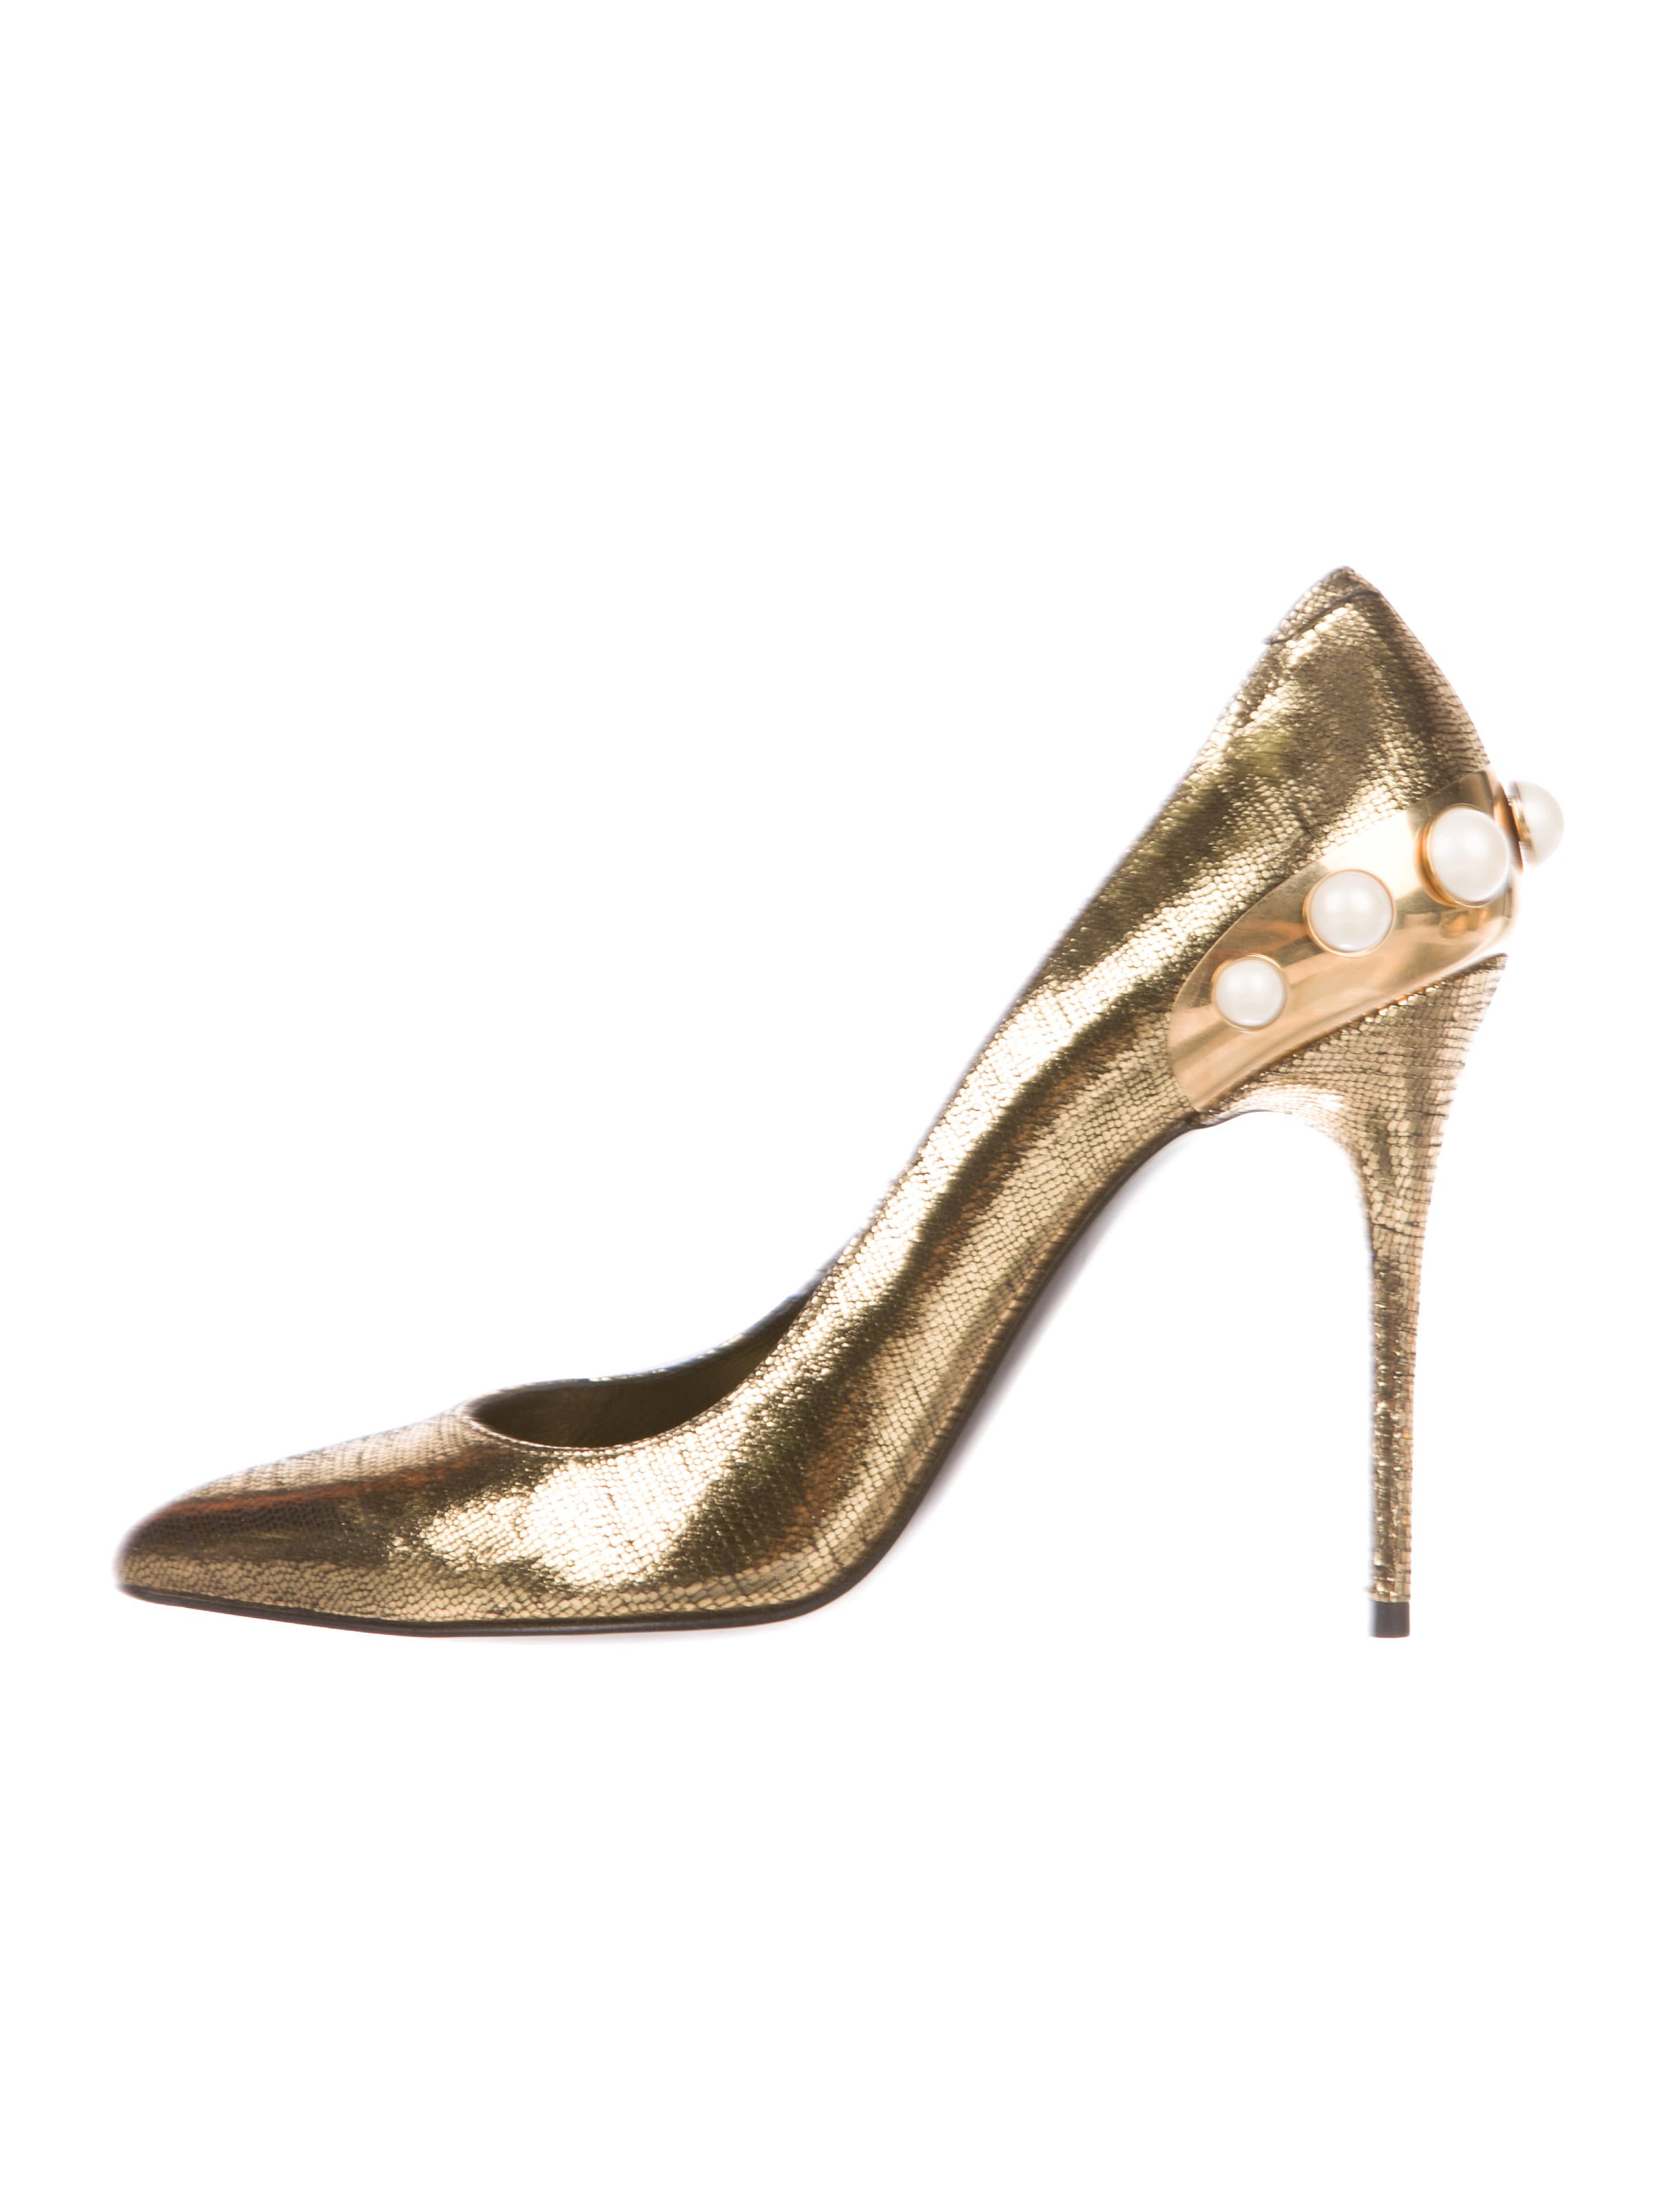 Alexander McQueen Leather Faux-Pearl Accented Pumps for sale cheap authentic h7S3VPC5